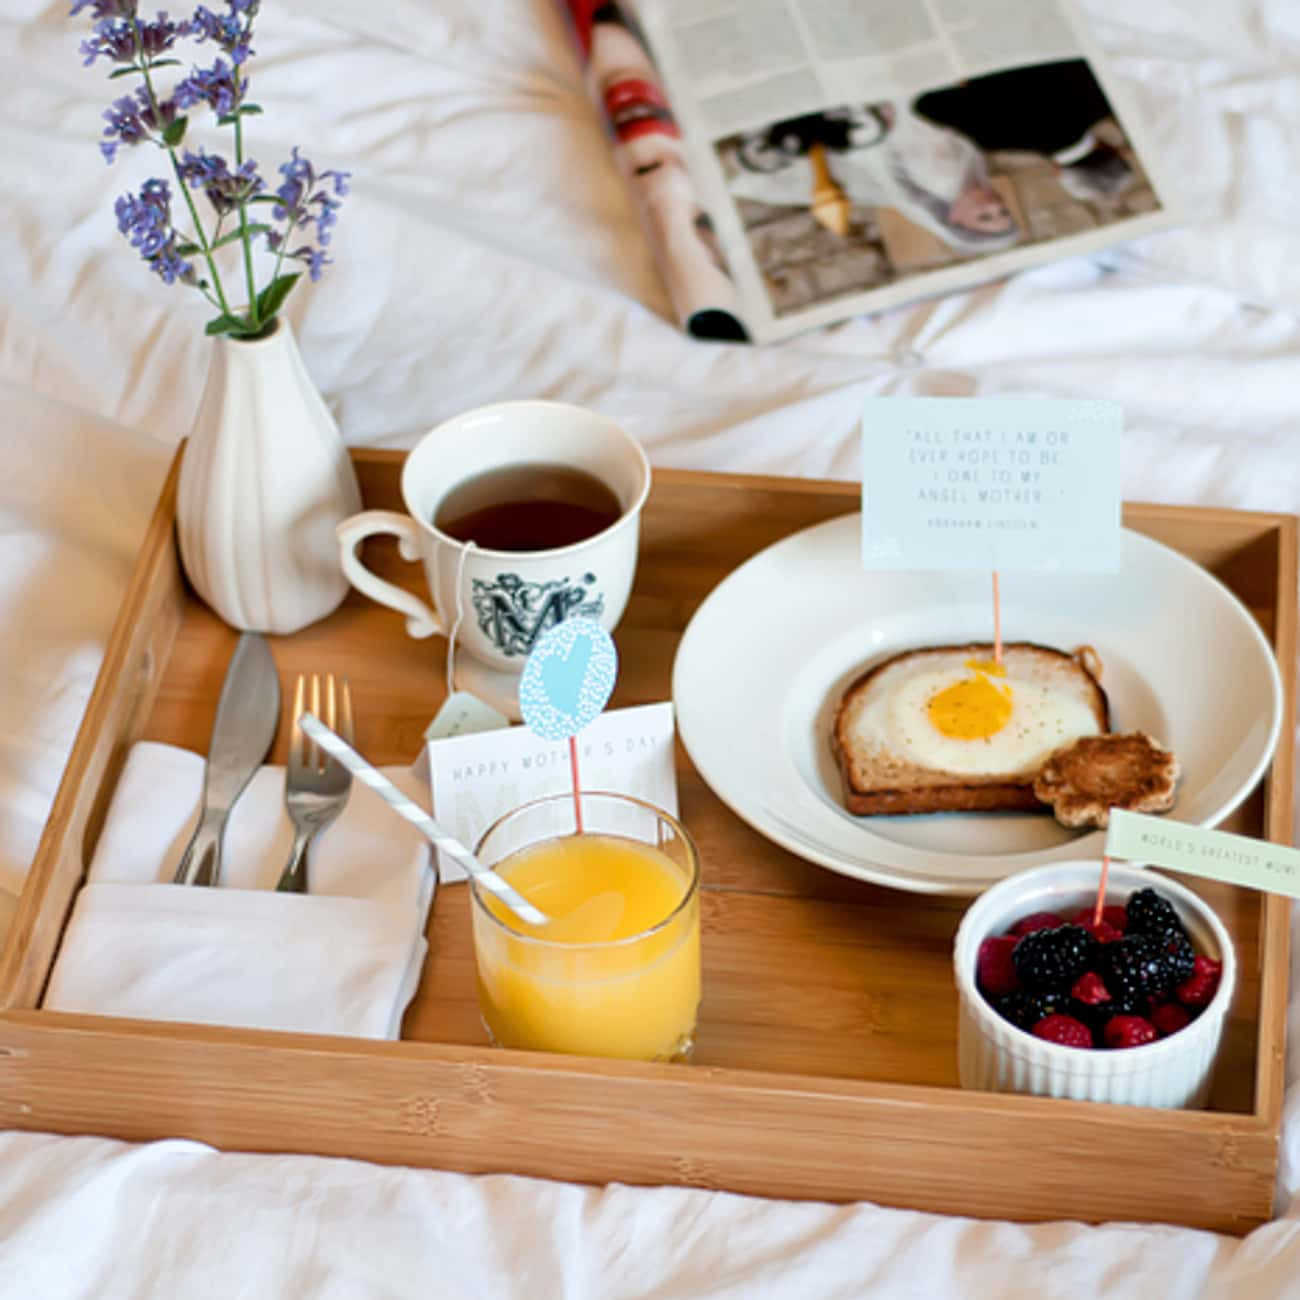 Breakfast in Bed is listed (or ranked) 2 on the list Date Ideas for Winter